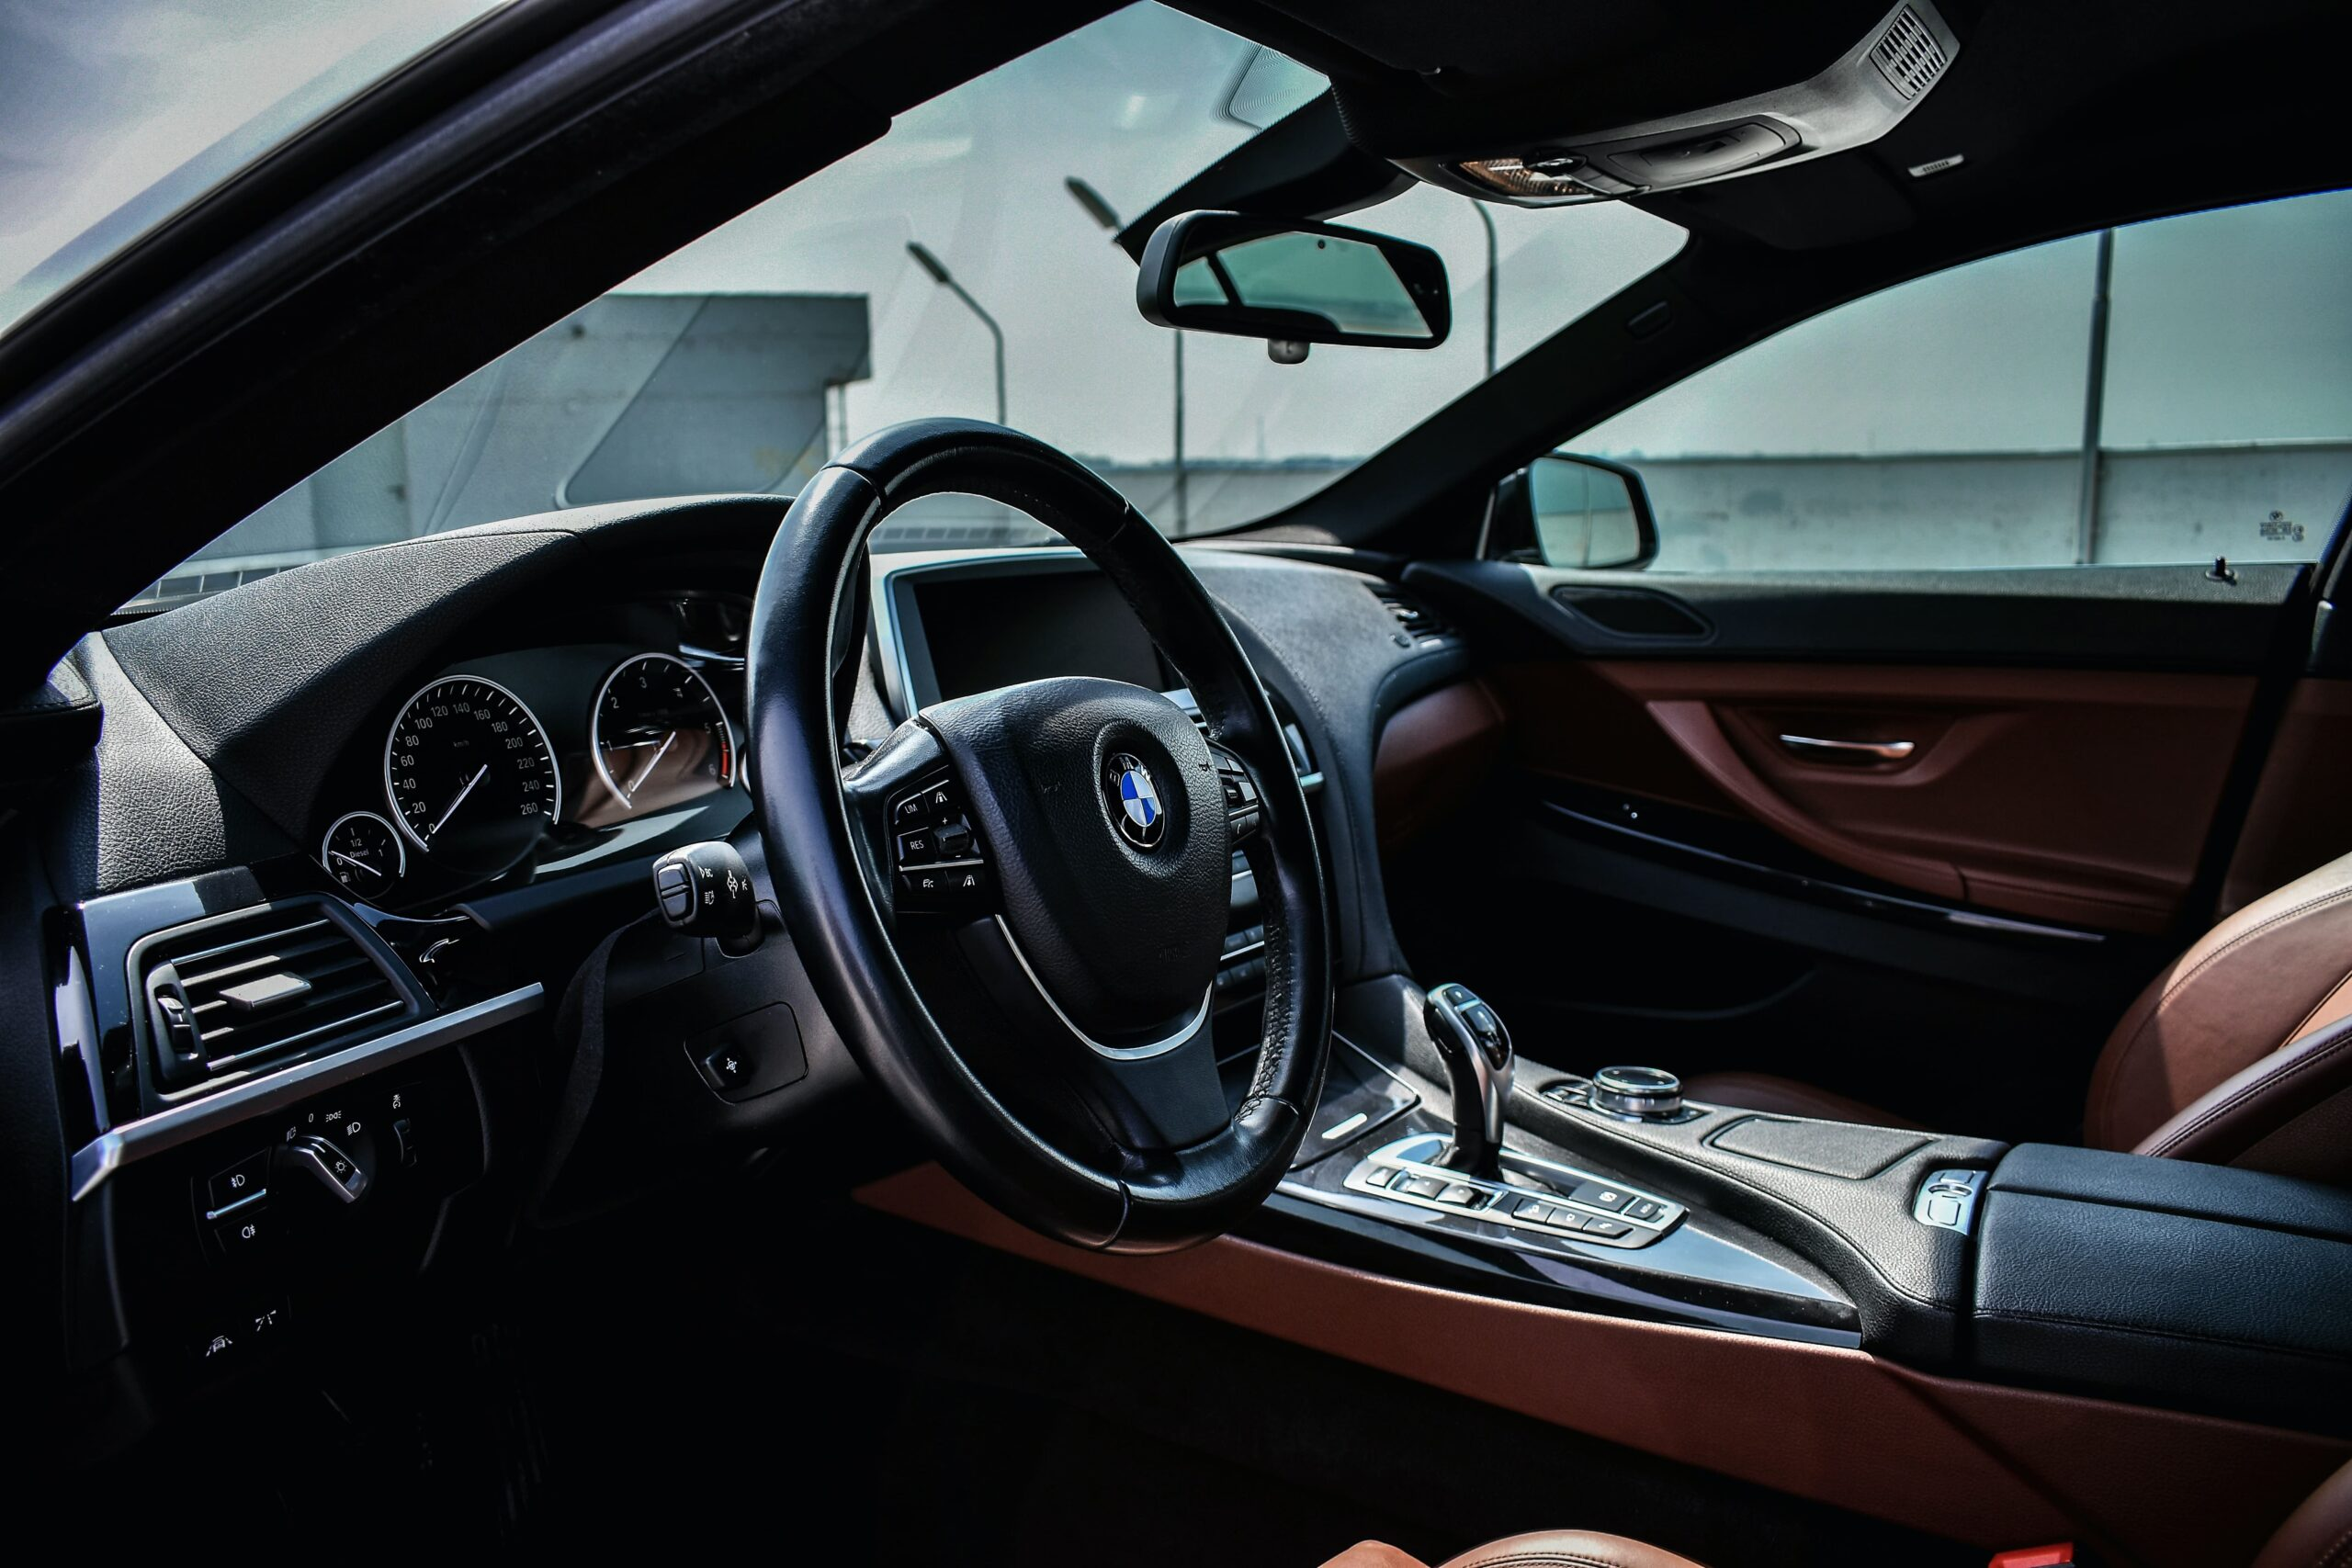 Auto Tech Guide: How to Take Care of Leather Car Interiors